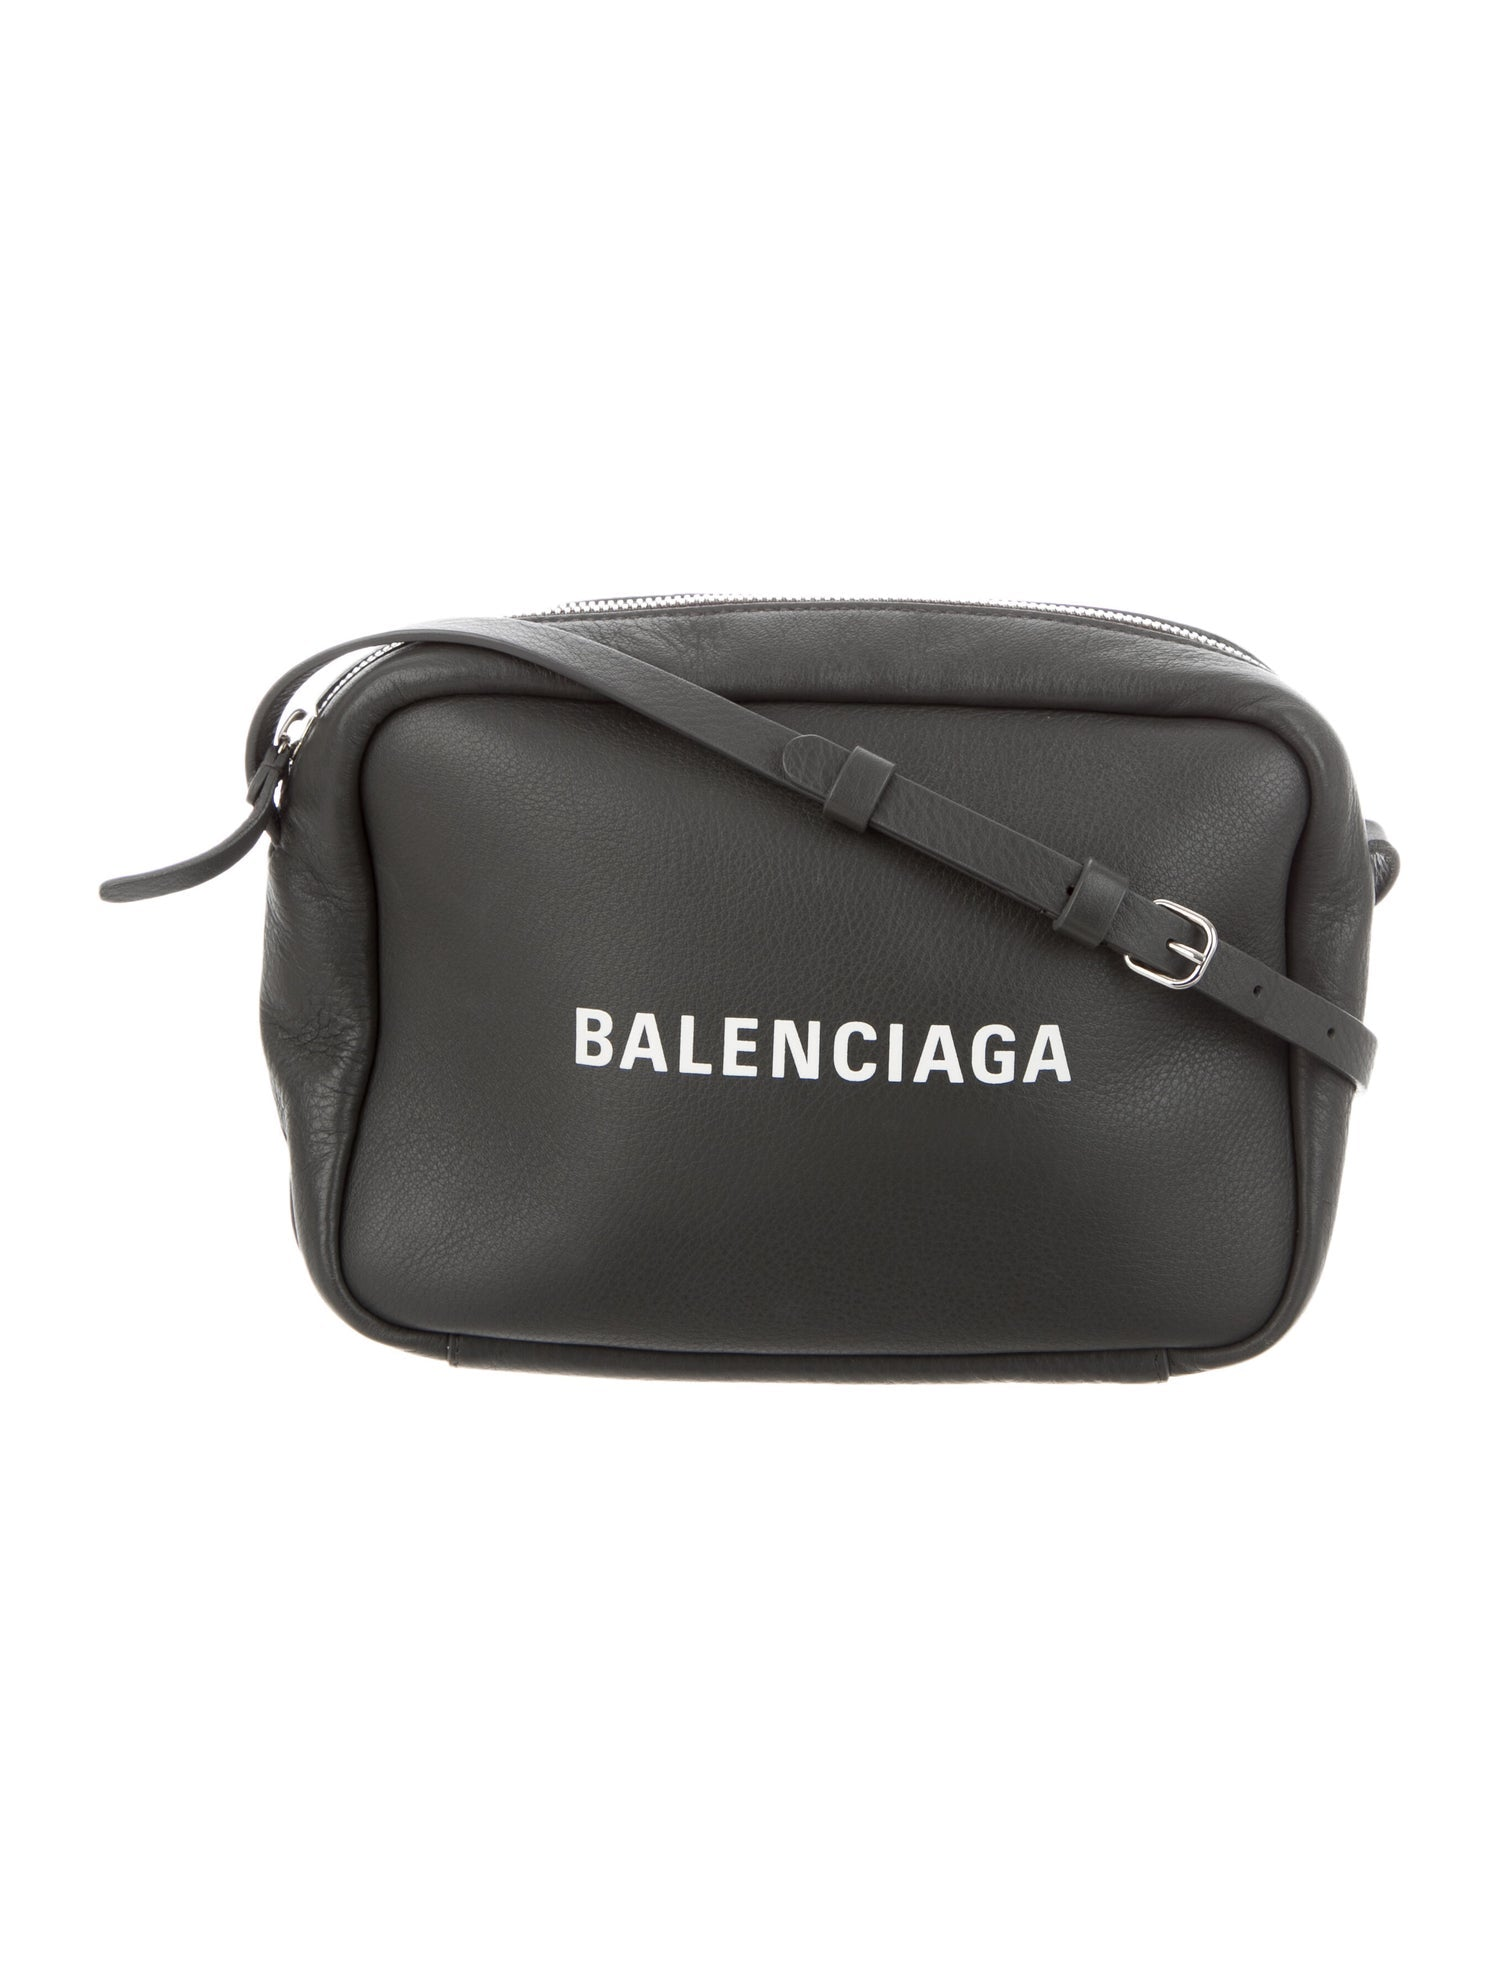 Balenciaga Black 'Everyday' Camera Bag